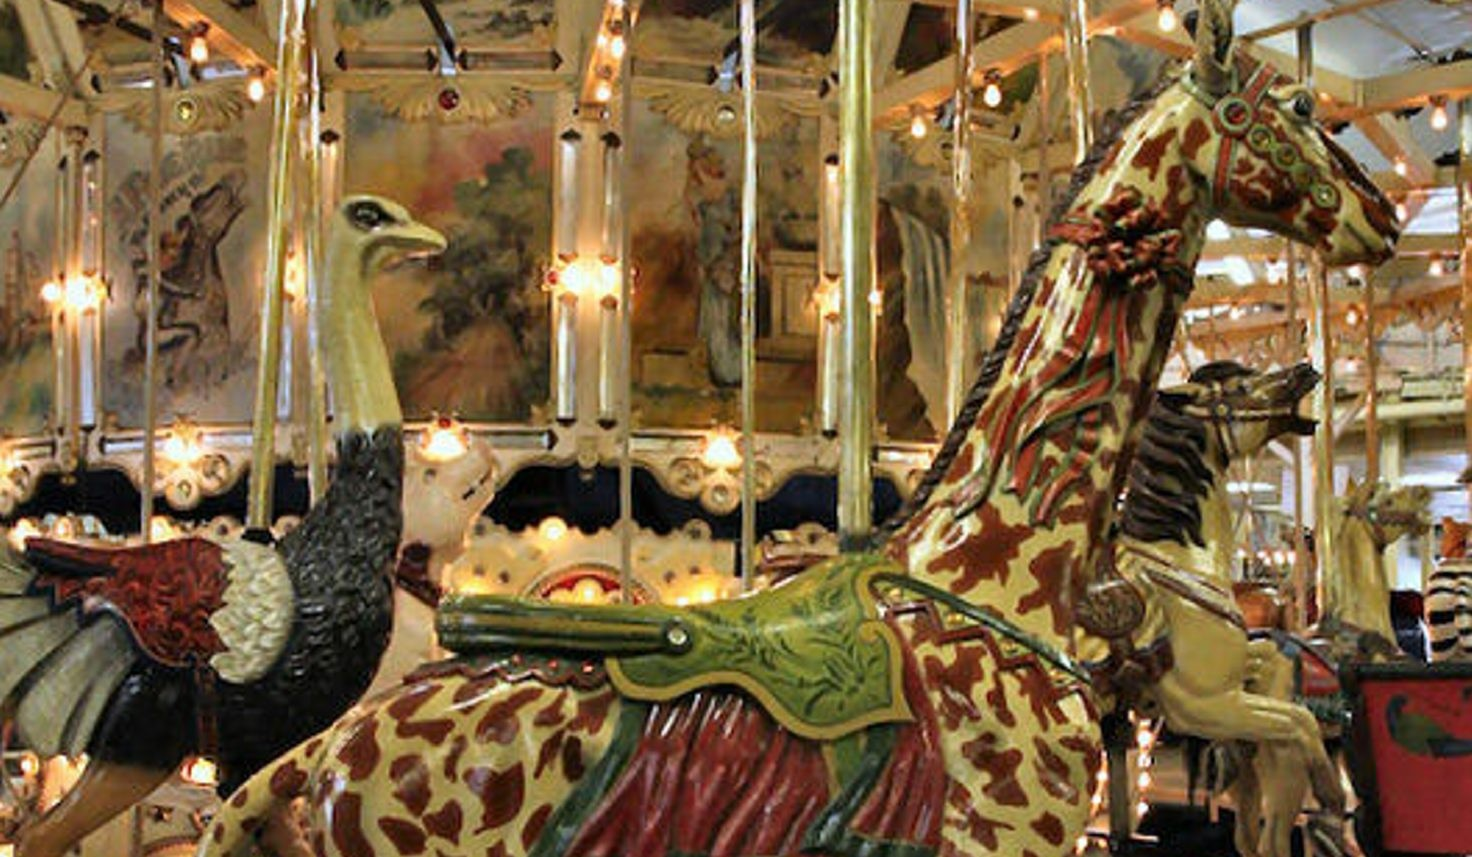 Top, Trimper's Ride in Ocean City, Md., is one of nine Herschell-Spillman park-style menagerie carousels in the U.S. Buffalo could soon have the tenth, including the original rose horse, above.